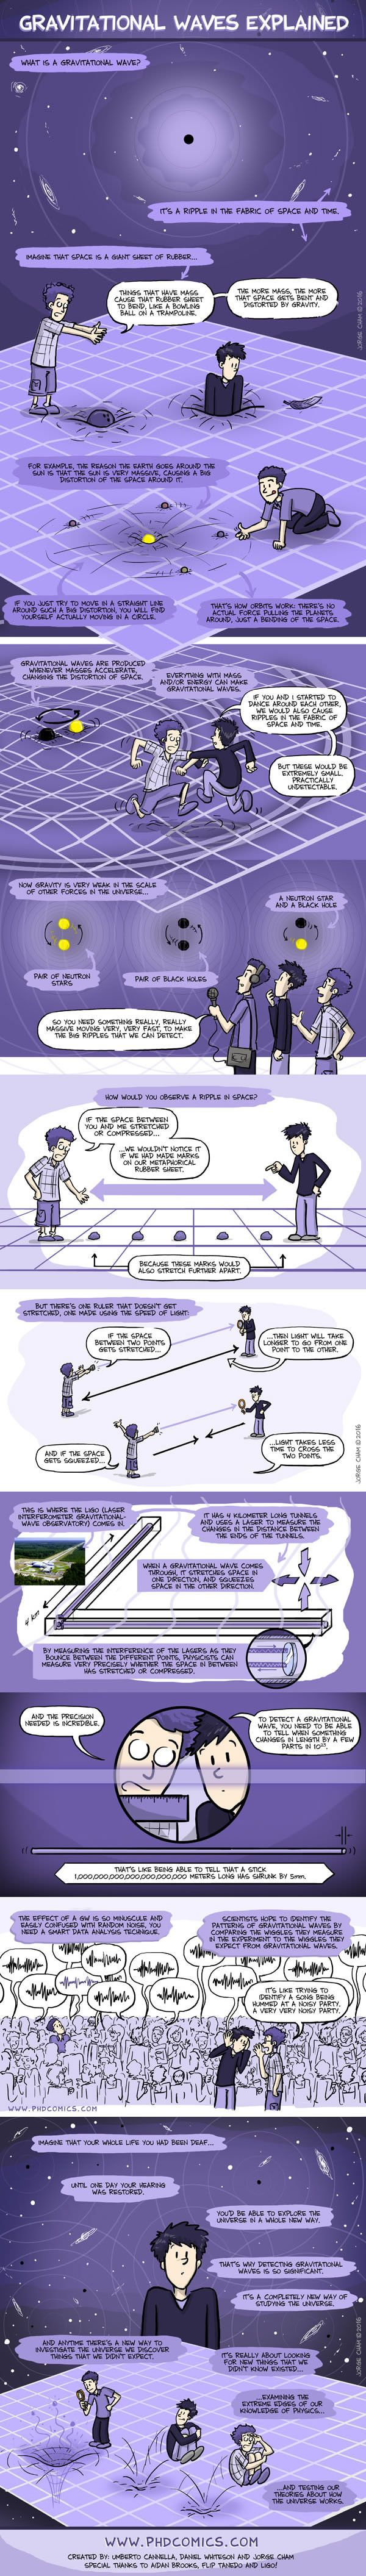 78 Best Images On Pinterest Learning Physics And Chemistry New Schematic Software For Engineersquick Easy Circuits This Funny Comic Gives You A Full Explanation Of Gravitational Waves By Jorge Cham Phdcomics